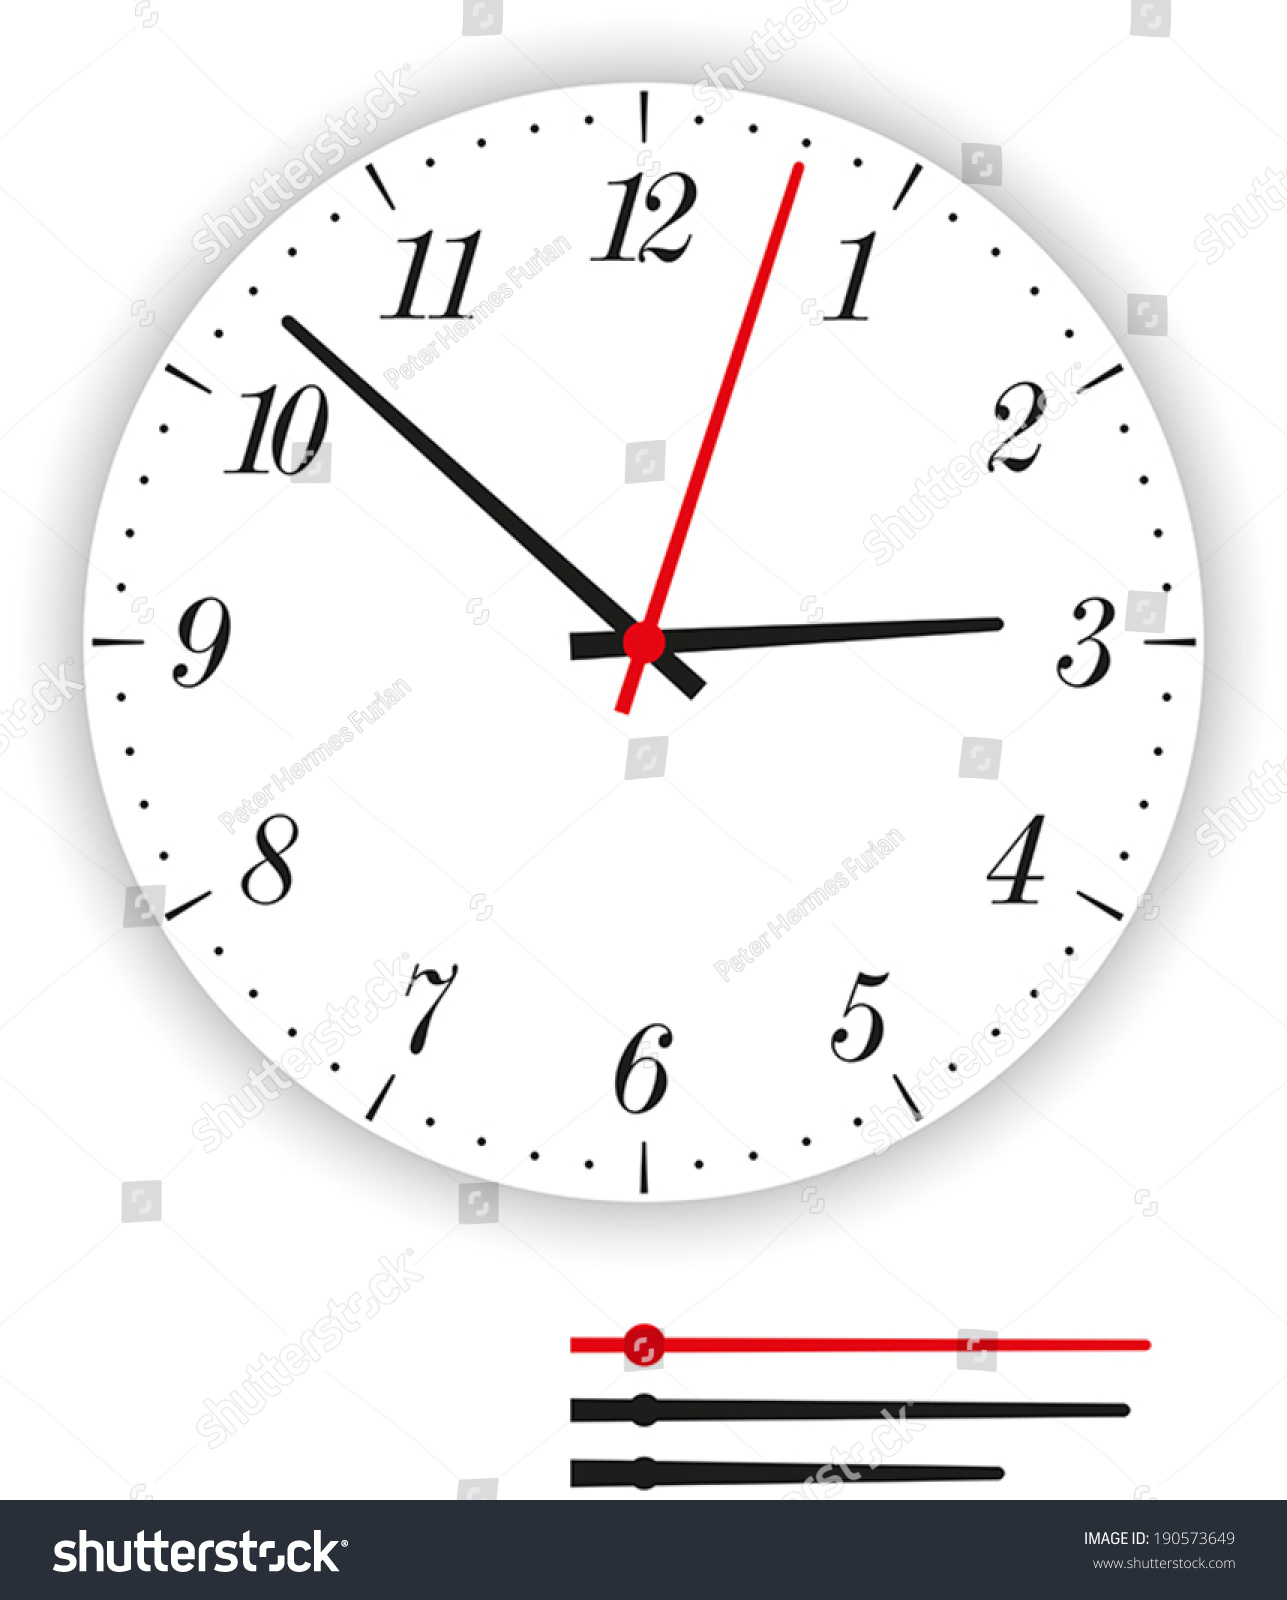 worksheet Analog Clock Face clock face modern illustration stock vector 190573649 of a dial as part of